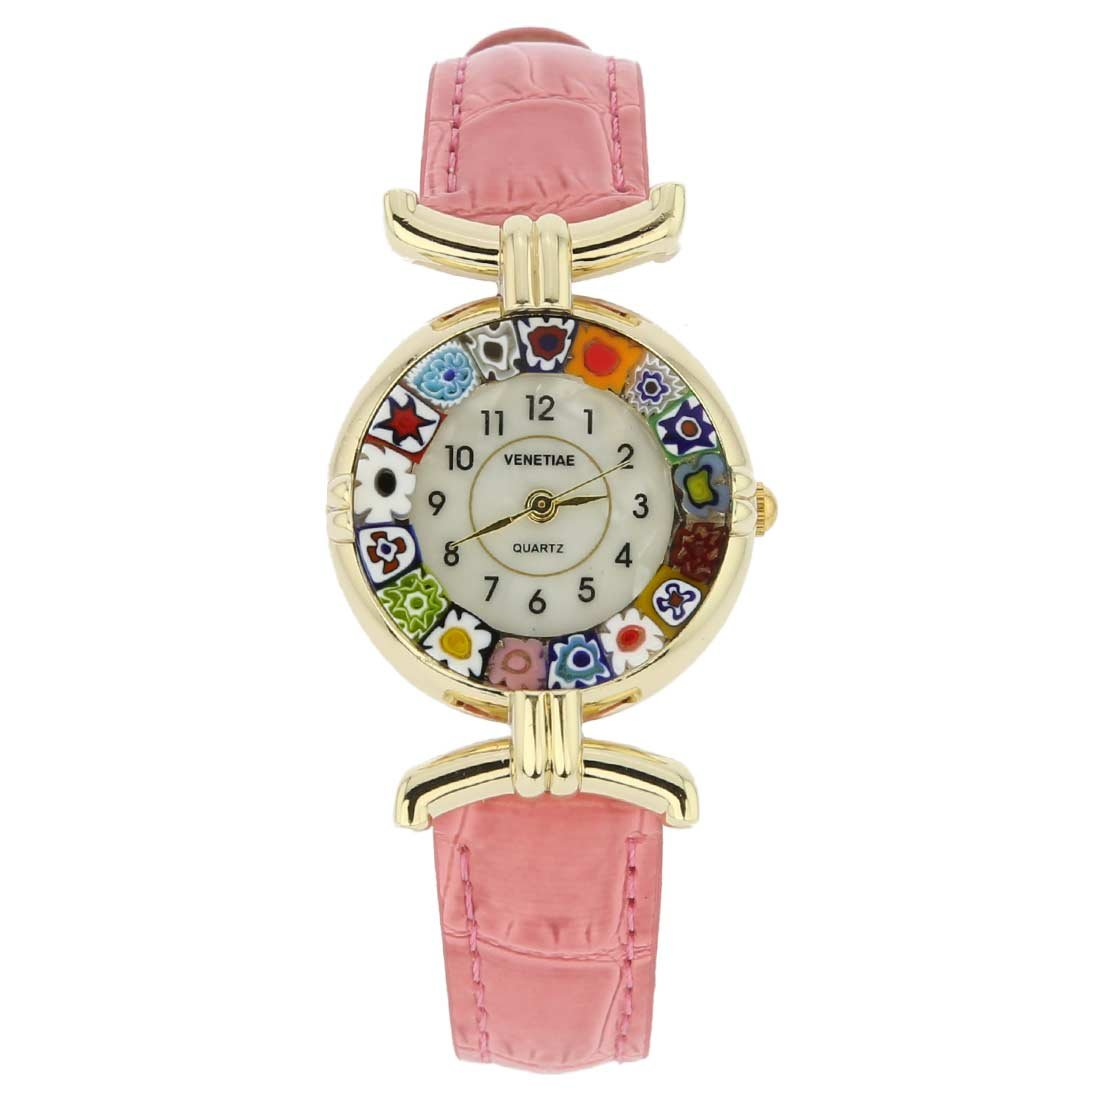 GlassOfVenice Murano Glass Millefiori Watch with Leather Band - Pink by GlassOfVenice